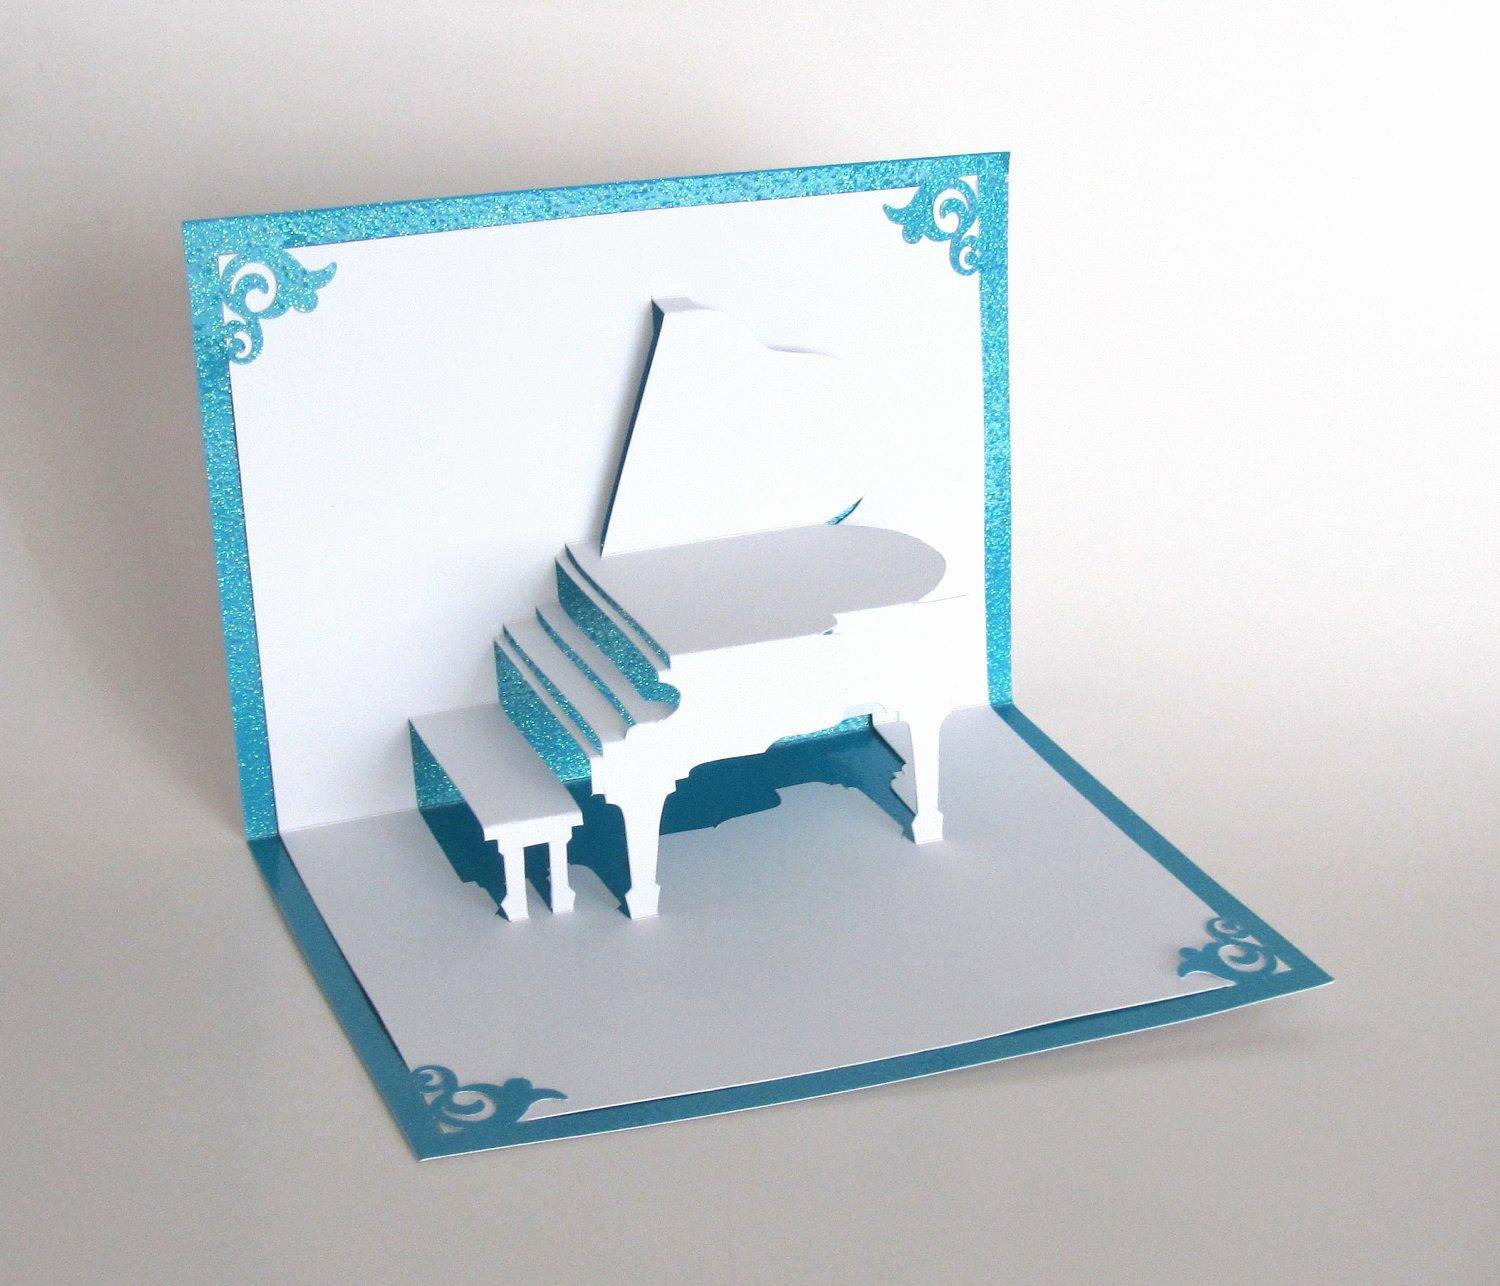 Popup Christmas Card Template Awesome Grand Piano 3d Pop Up Greeting Card Handmade Cut by Hand